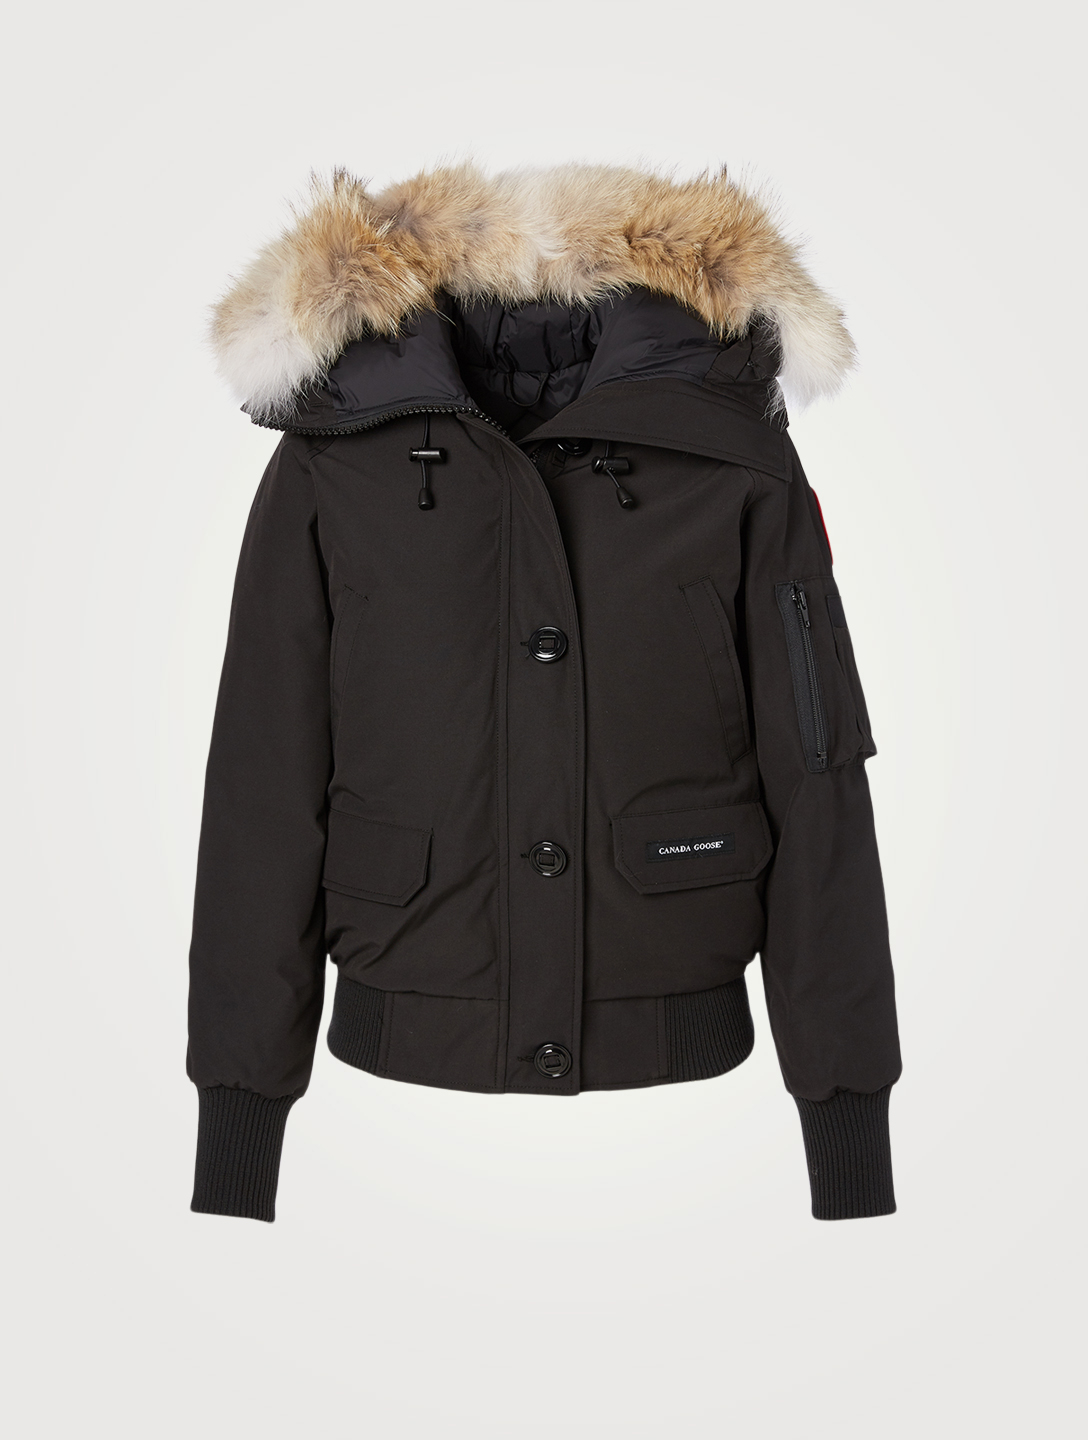 4bc97a2d0fd34 CANADA GOOSE Chilliwack Down Bomber Jacket With Fur - Fusion Fit Designers  Black ...